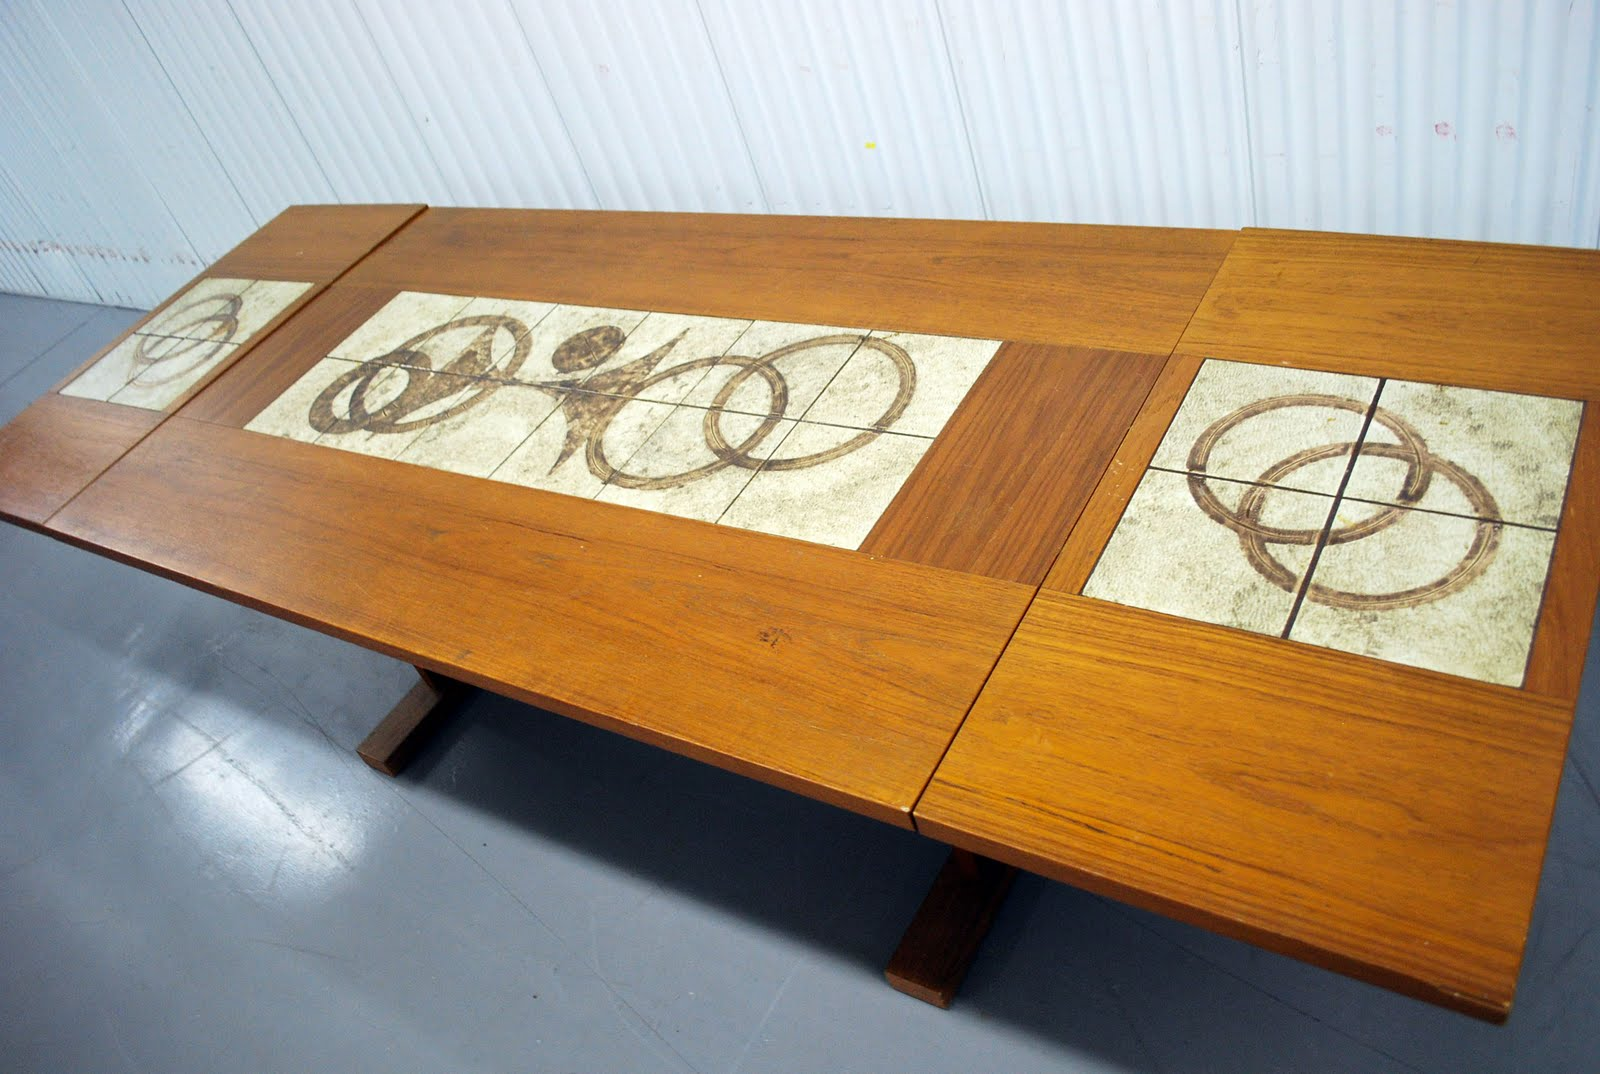 Tile Top Kitchen Table With Leaf